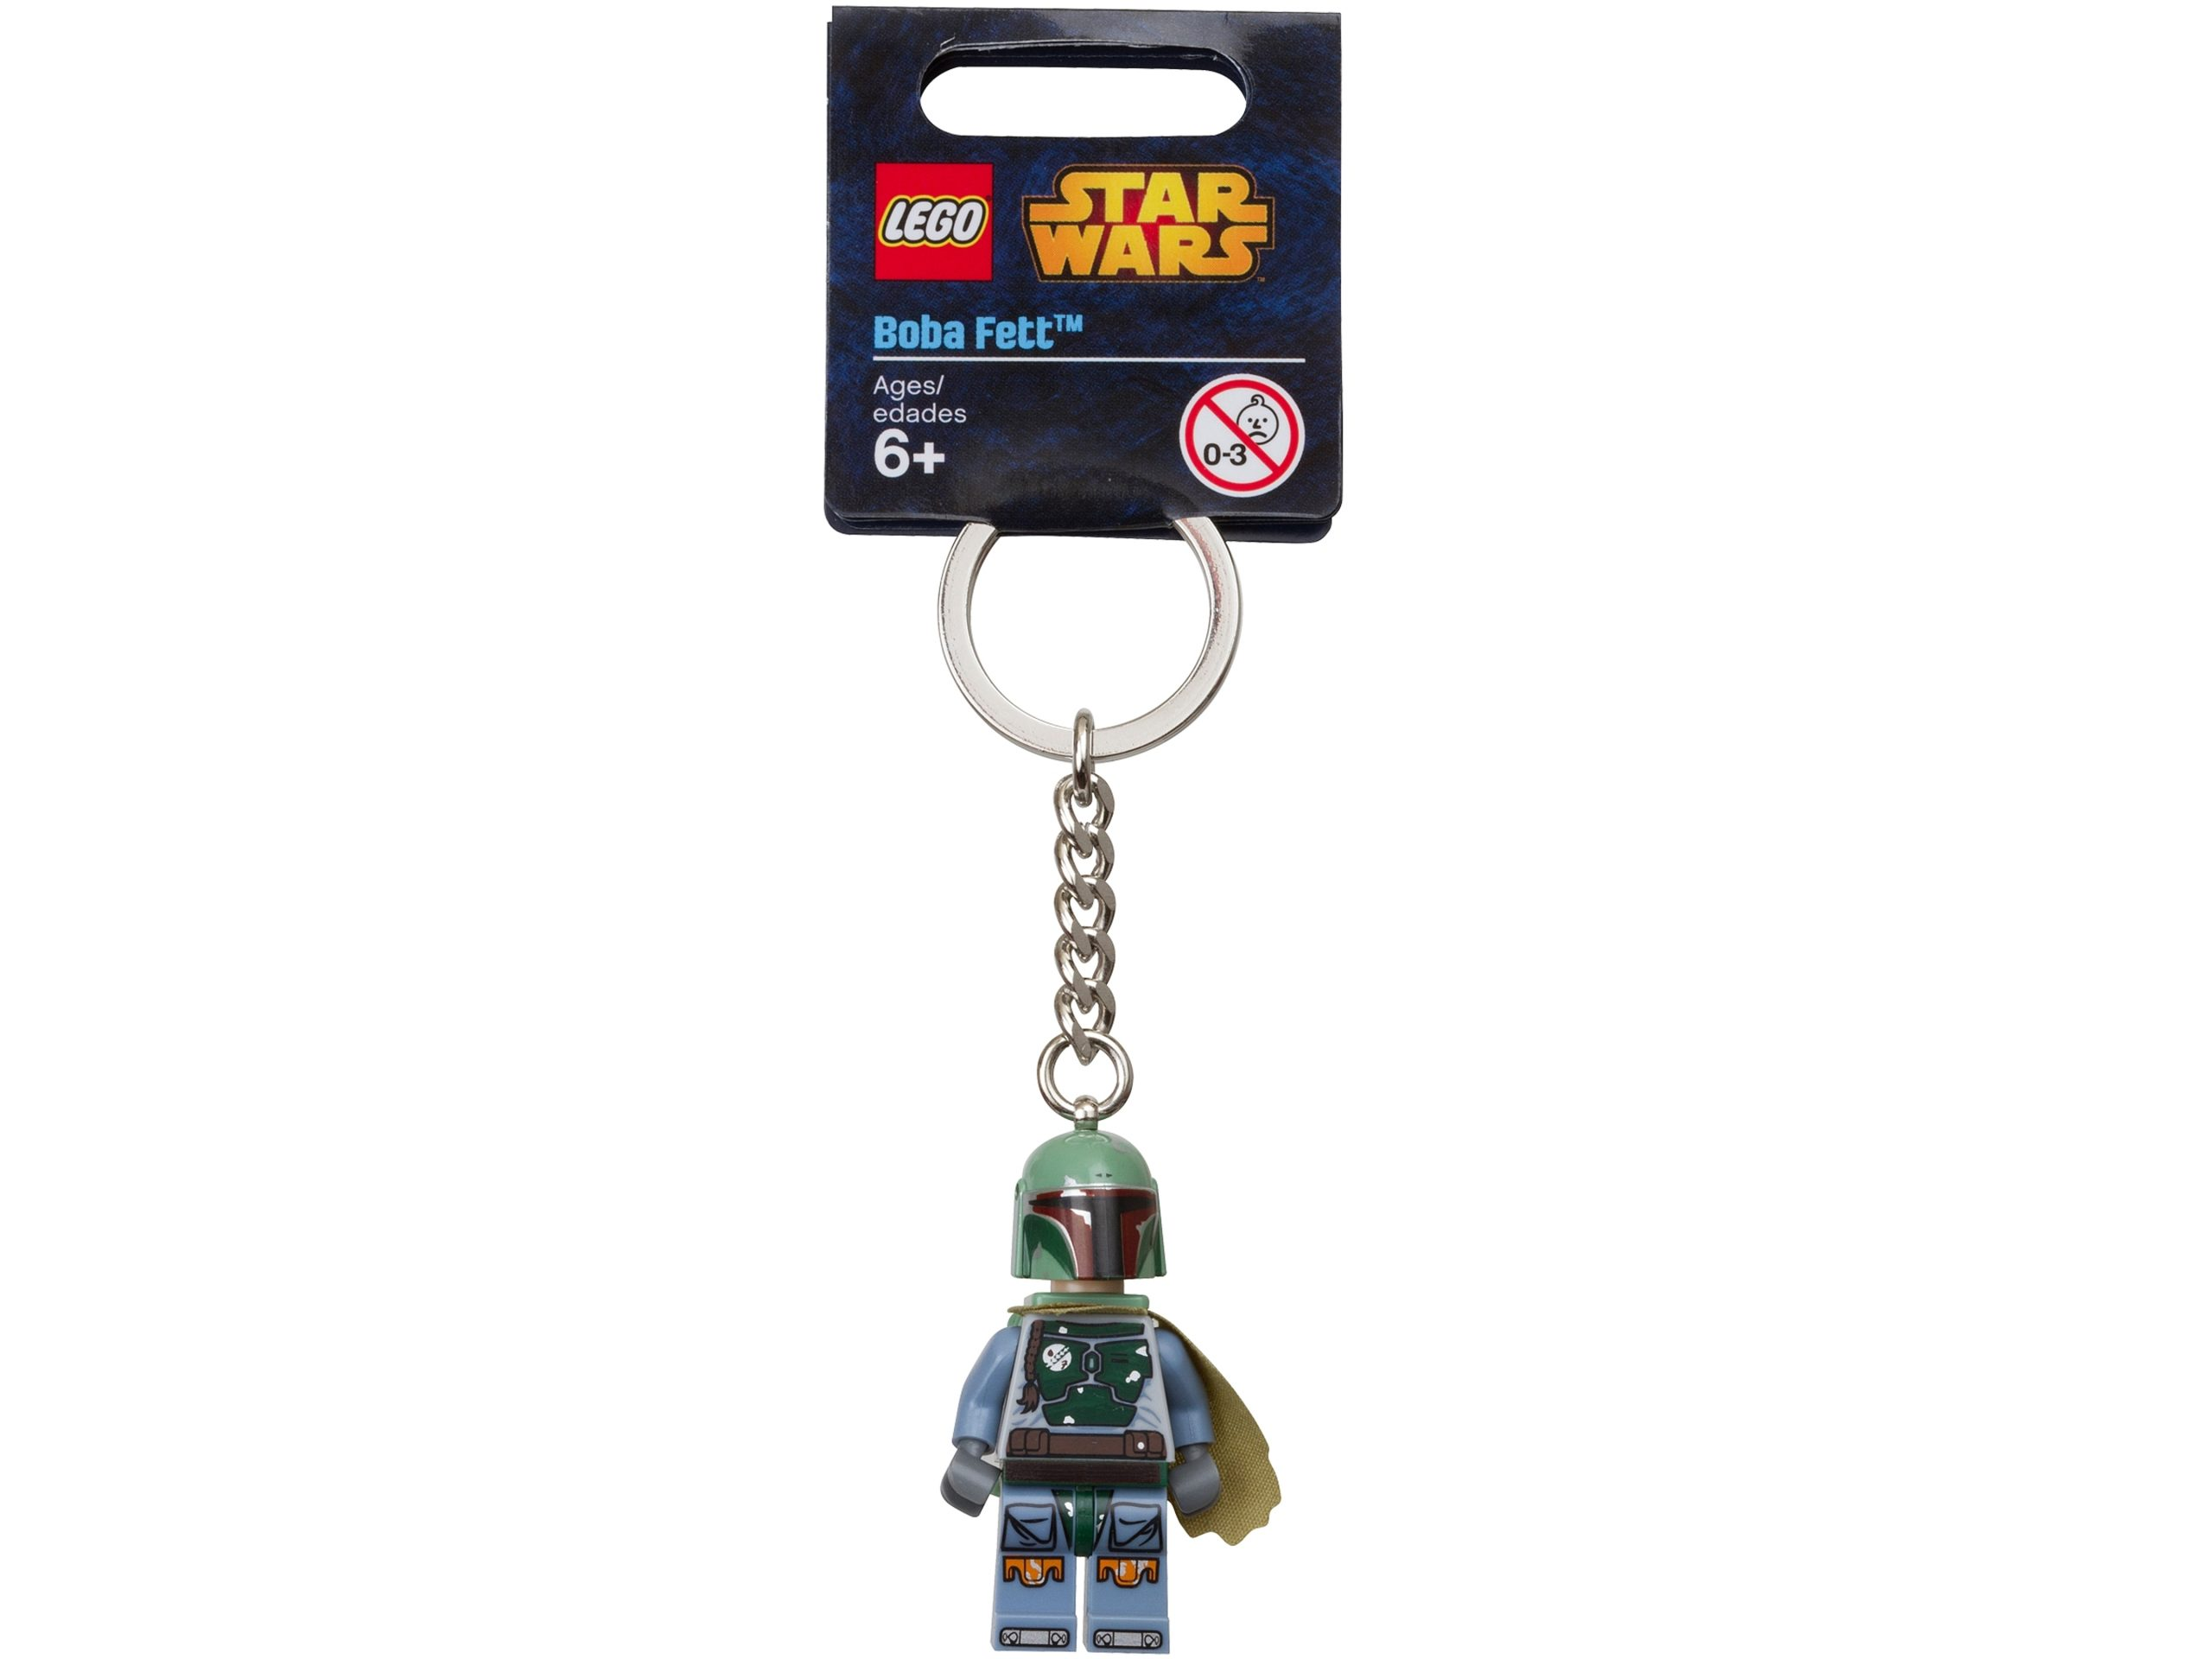 lego 850998 star wars boba fett key chain scaled